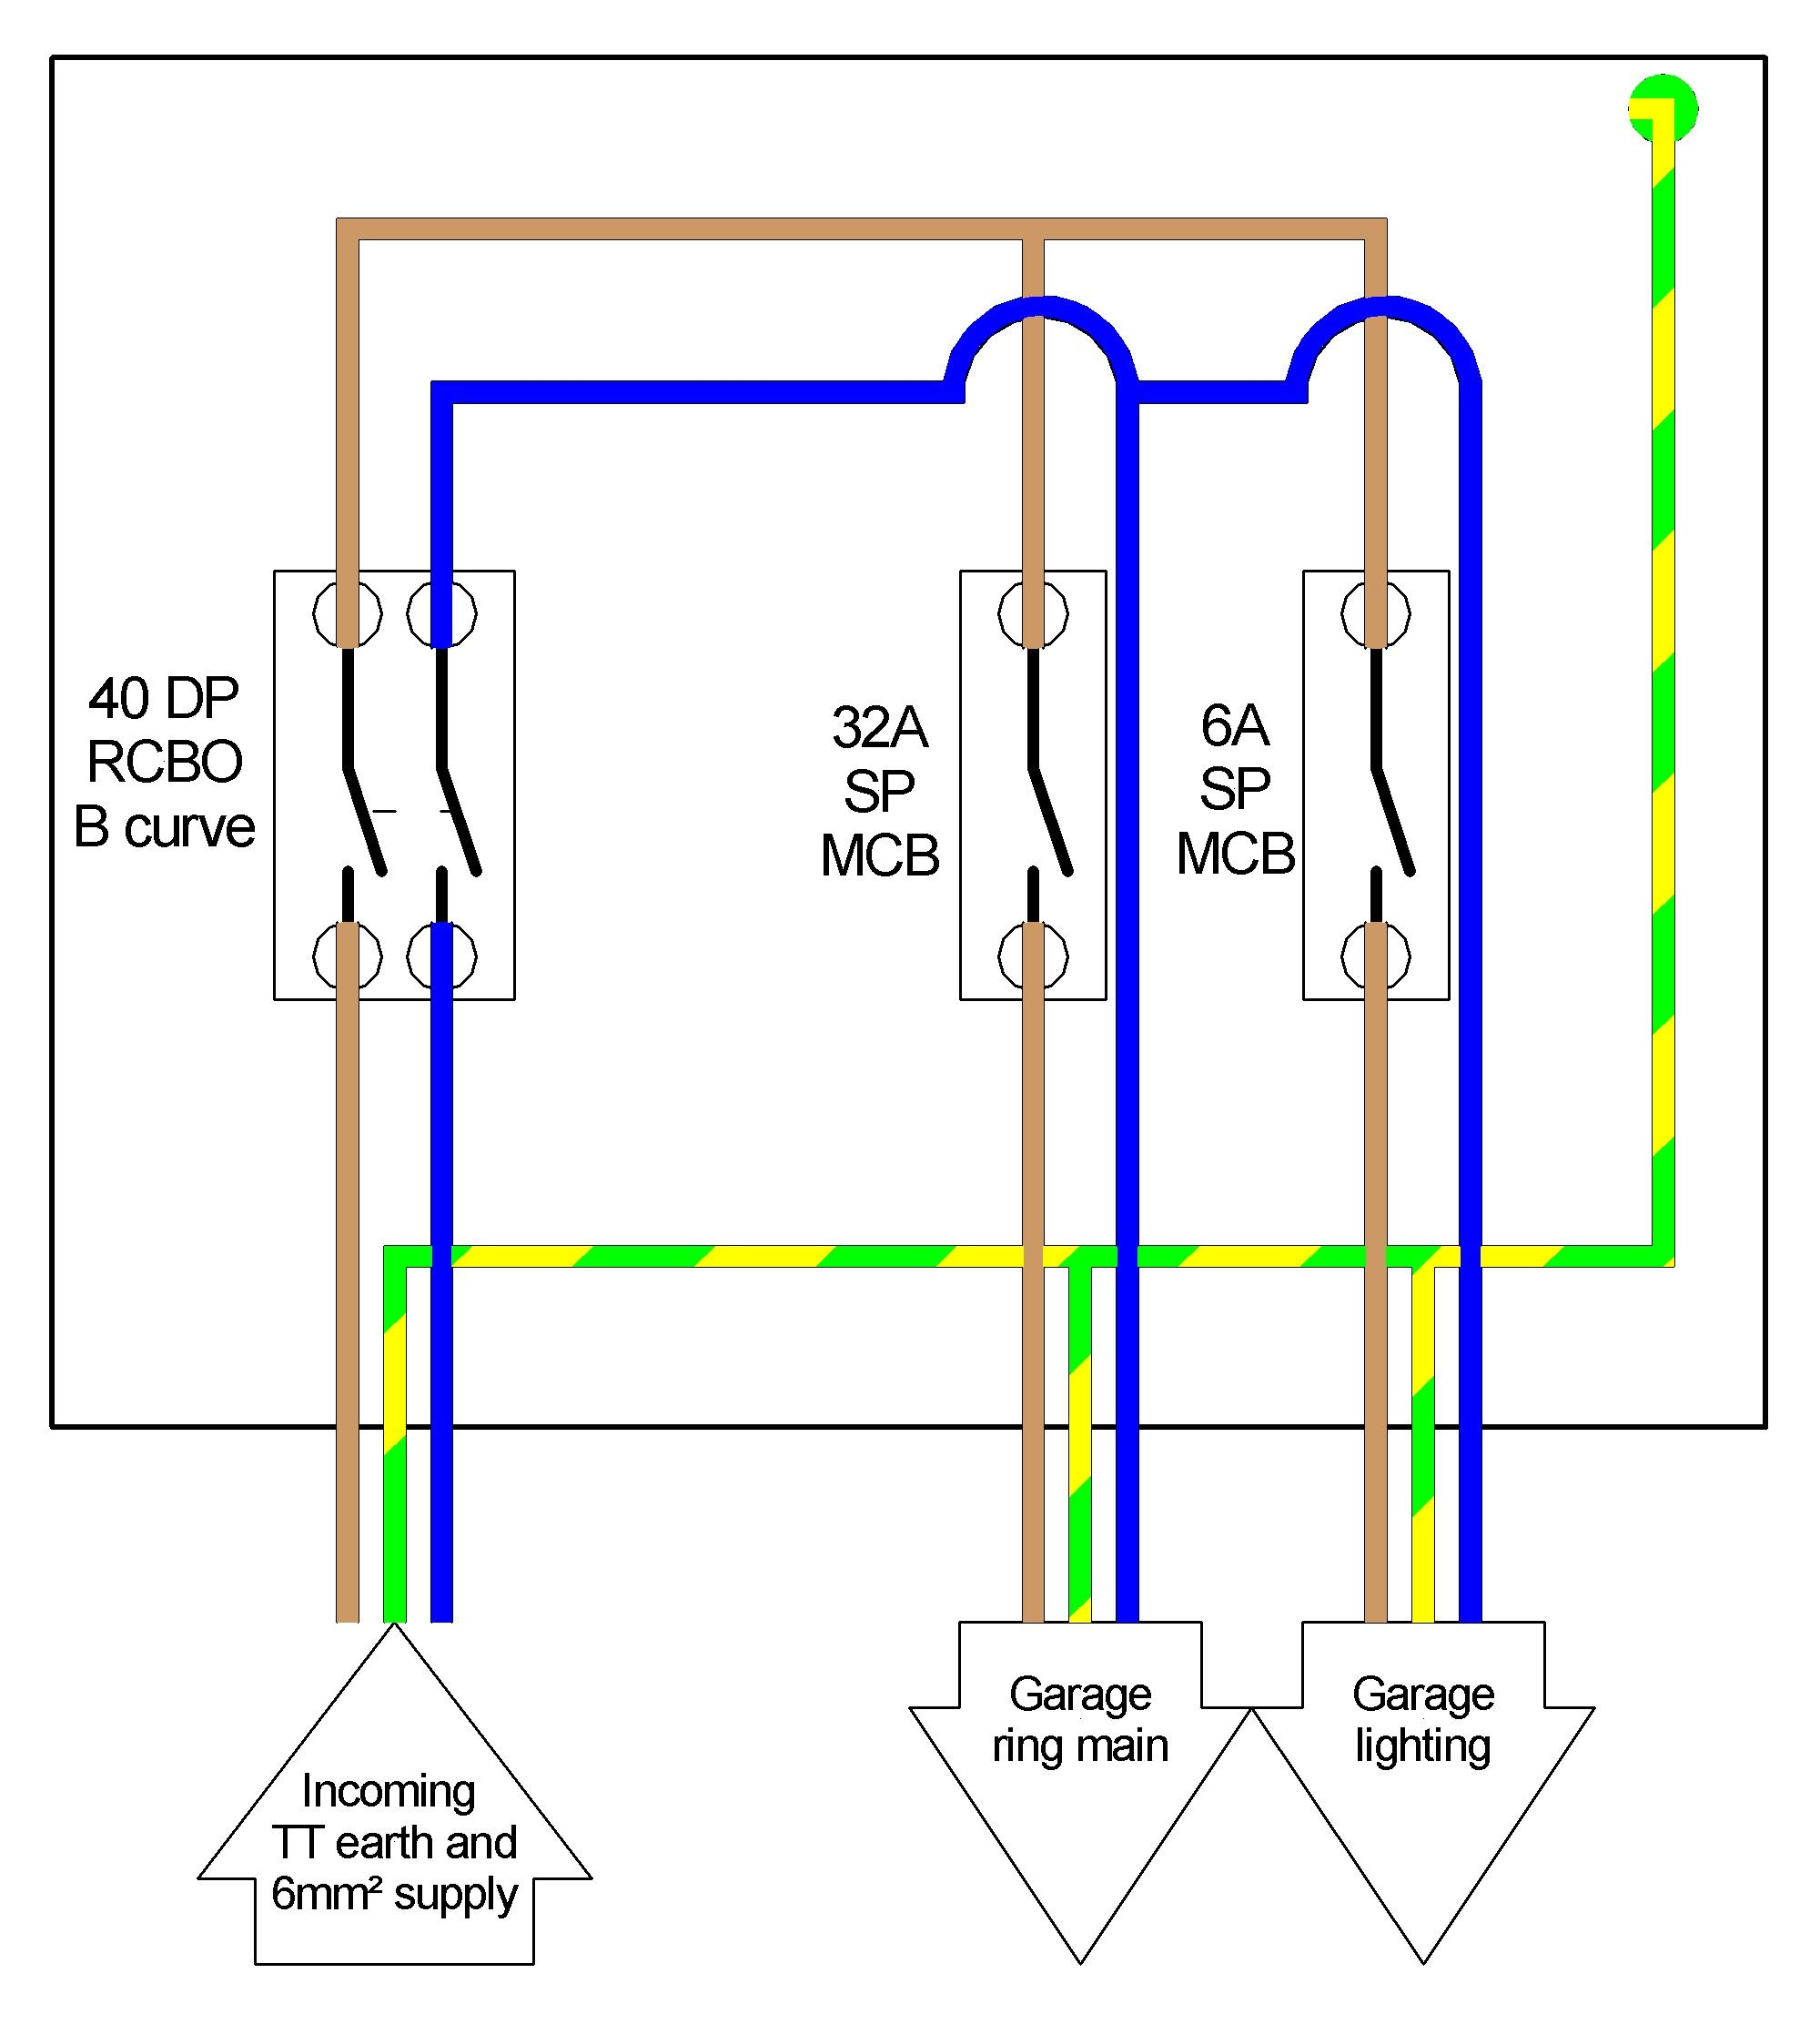 Luxury Wiring Diagram For Lighting Circuits Diagrams Digramssample Diagramimages Wiringdiagramsample Wiringdi Ceiling Rose Wiring Diagram Lighting Diagram